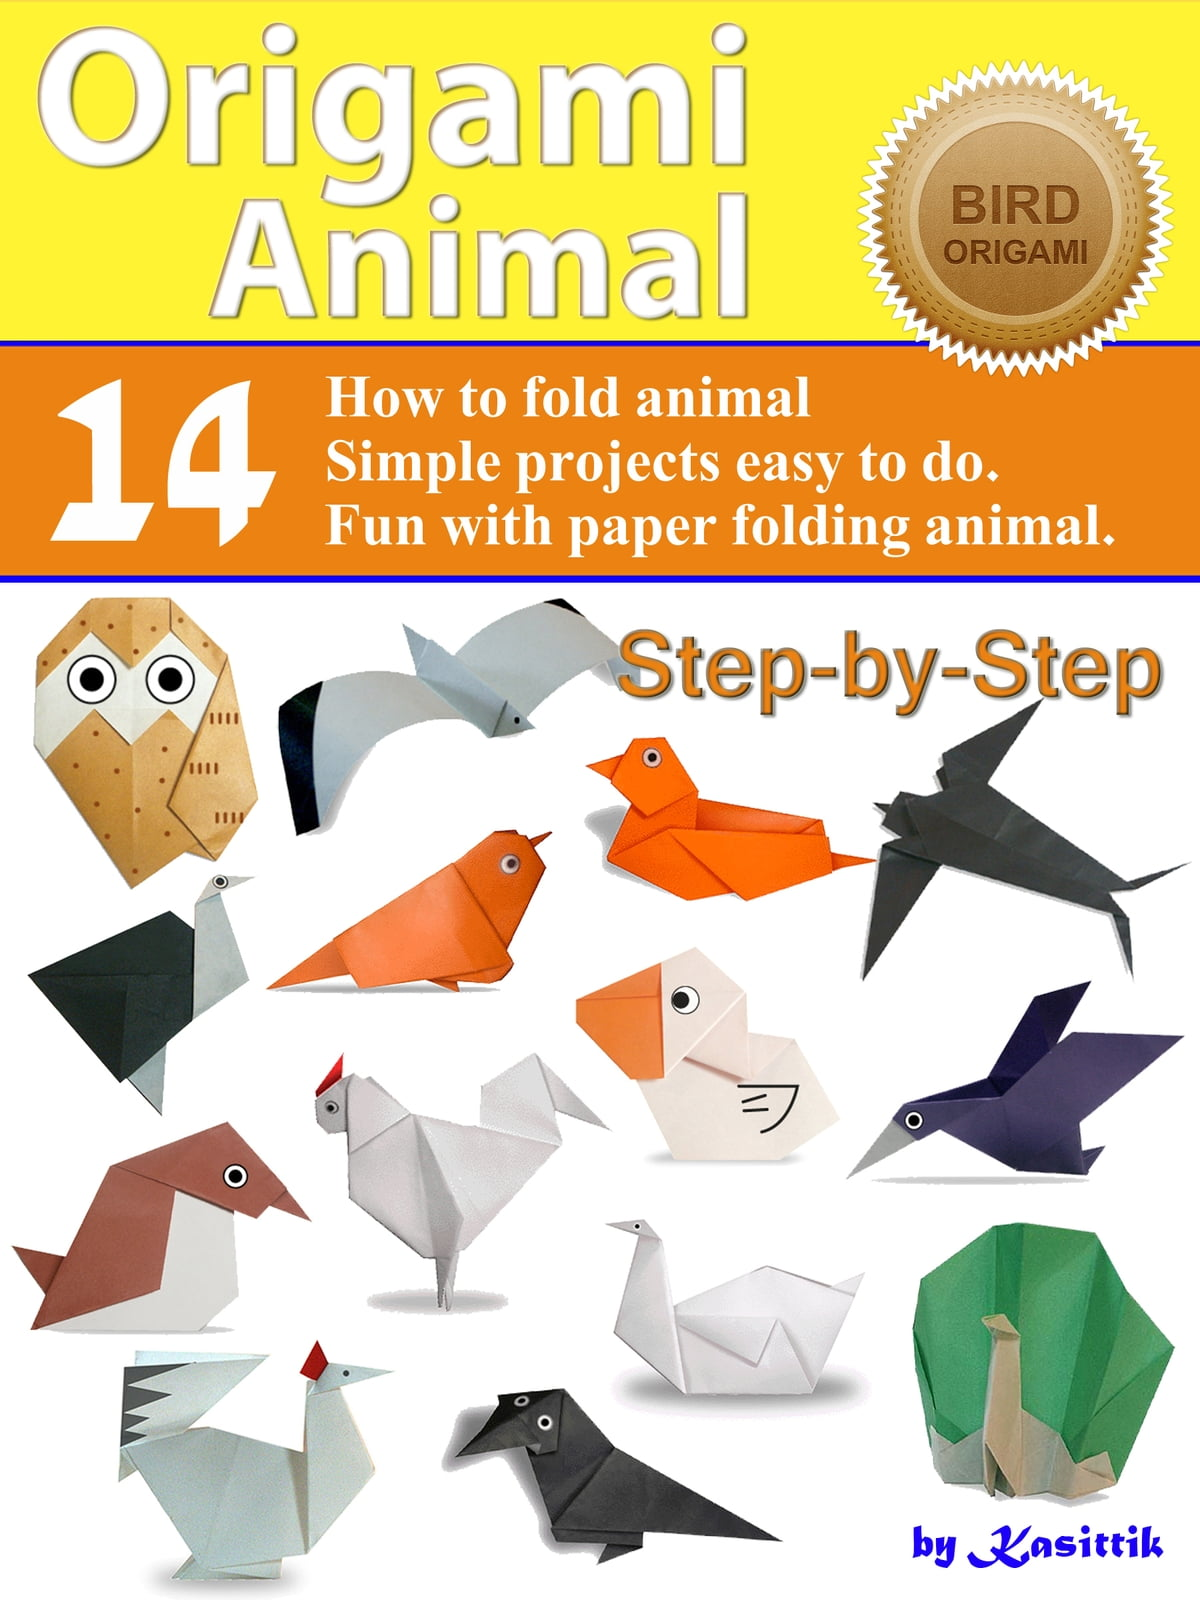 Image detail for -BIRD ORIGAMI INSTRUCTIONS « EMBROIDERY & ORIGAMI ... | 1600x1200